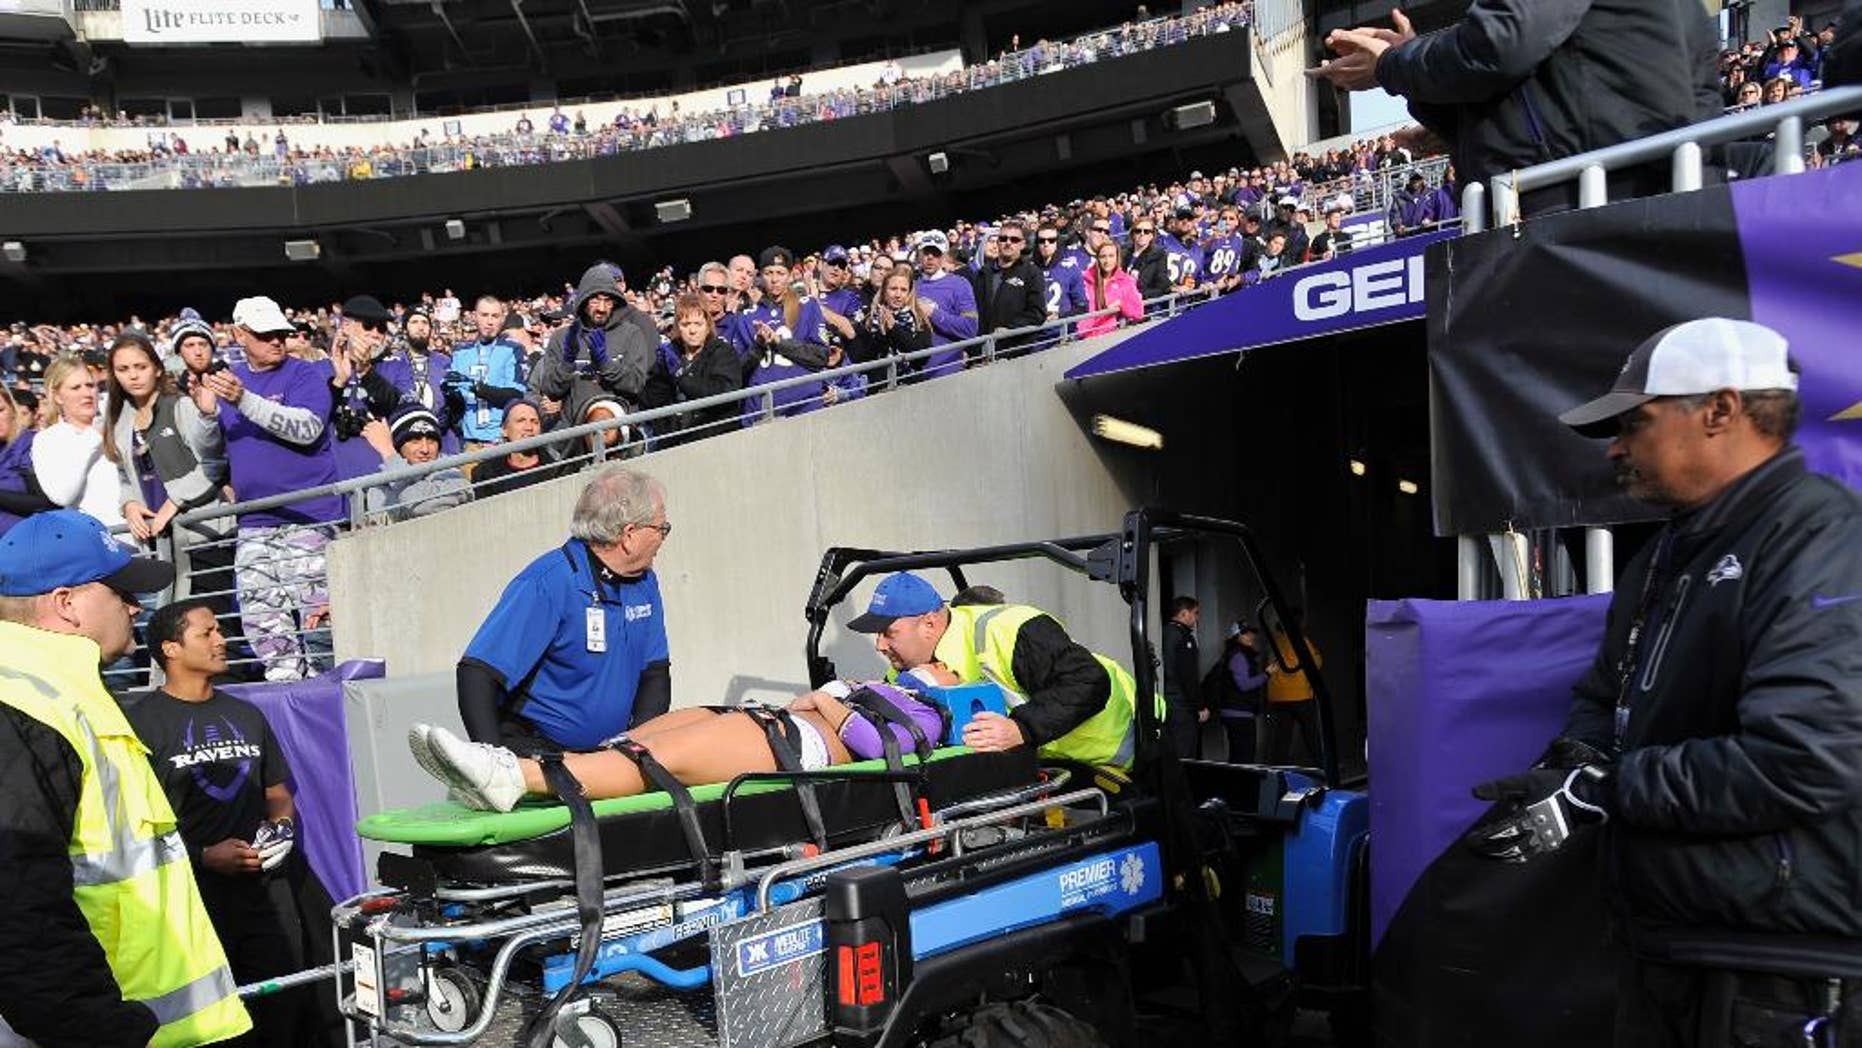 A Baltimore Ravens cheerleader is taken off the field after being injured during the second half of an NFL football game against the Tennessee Titans in Baltimore, Sunday, Nov. 9, 2014. (AP Photo/Gail Burton)